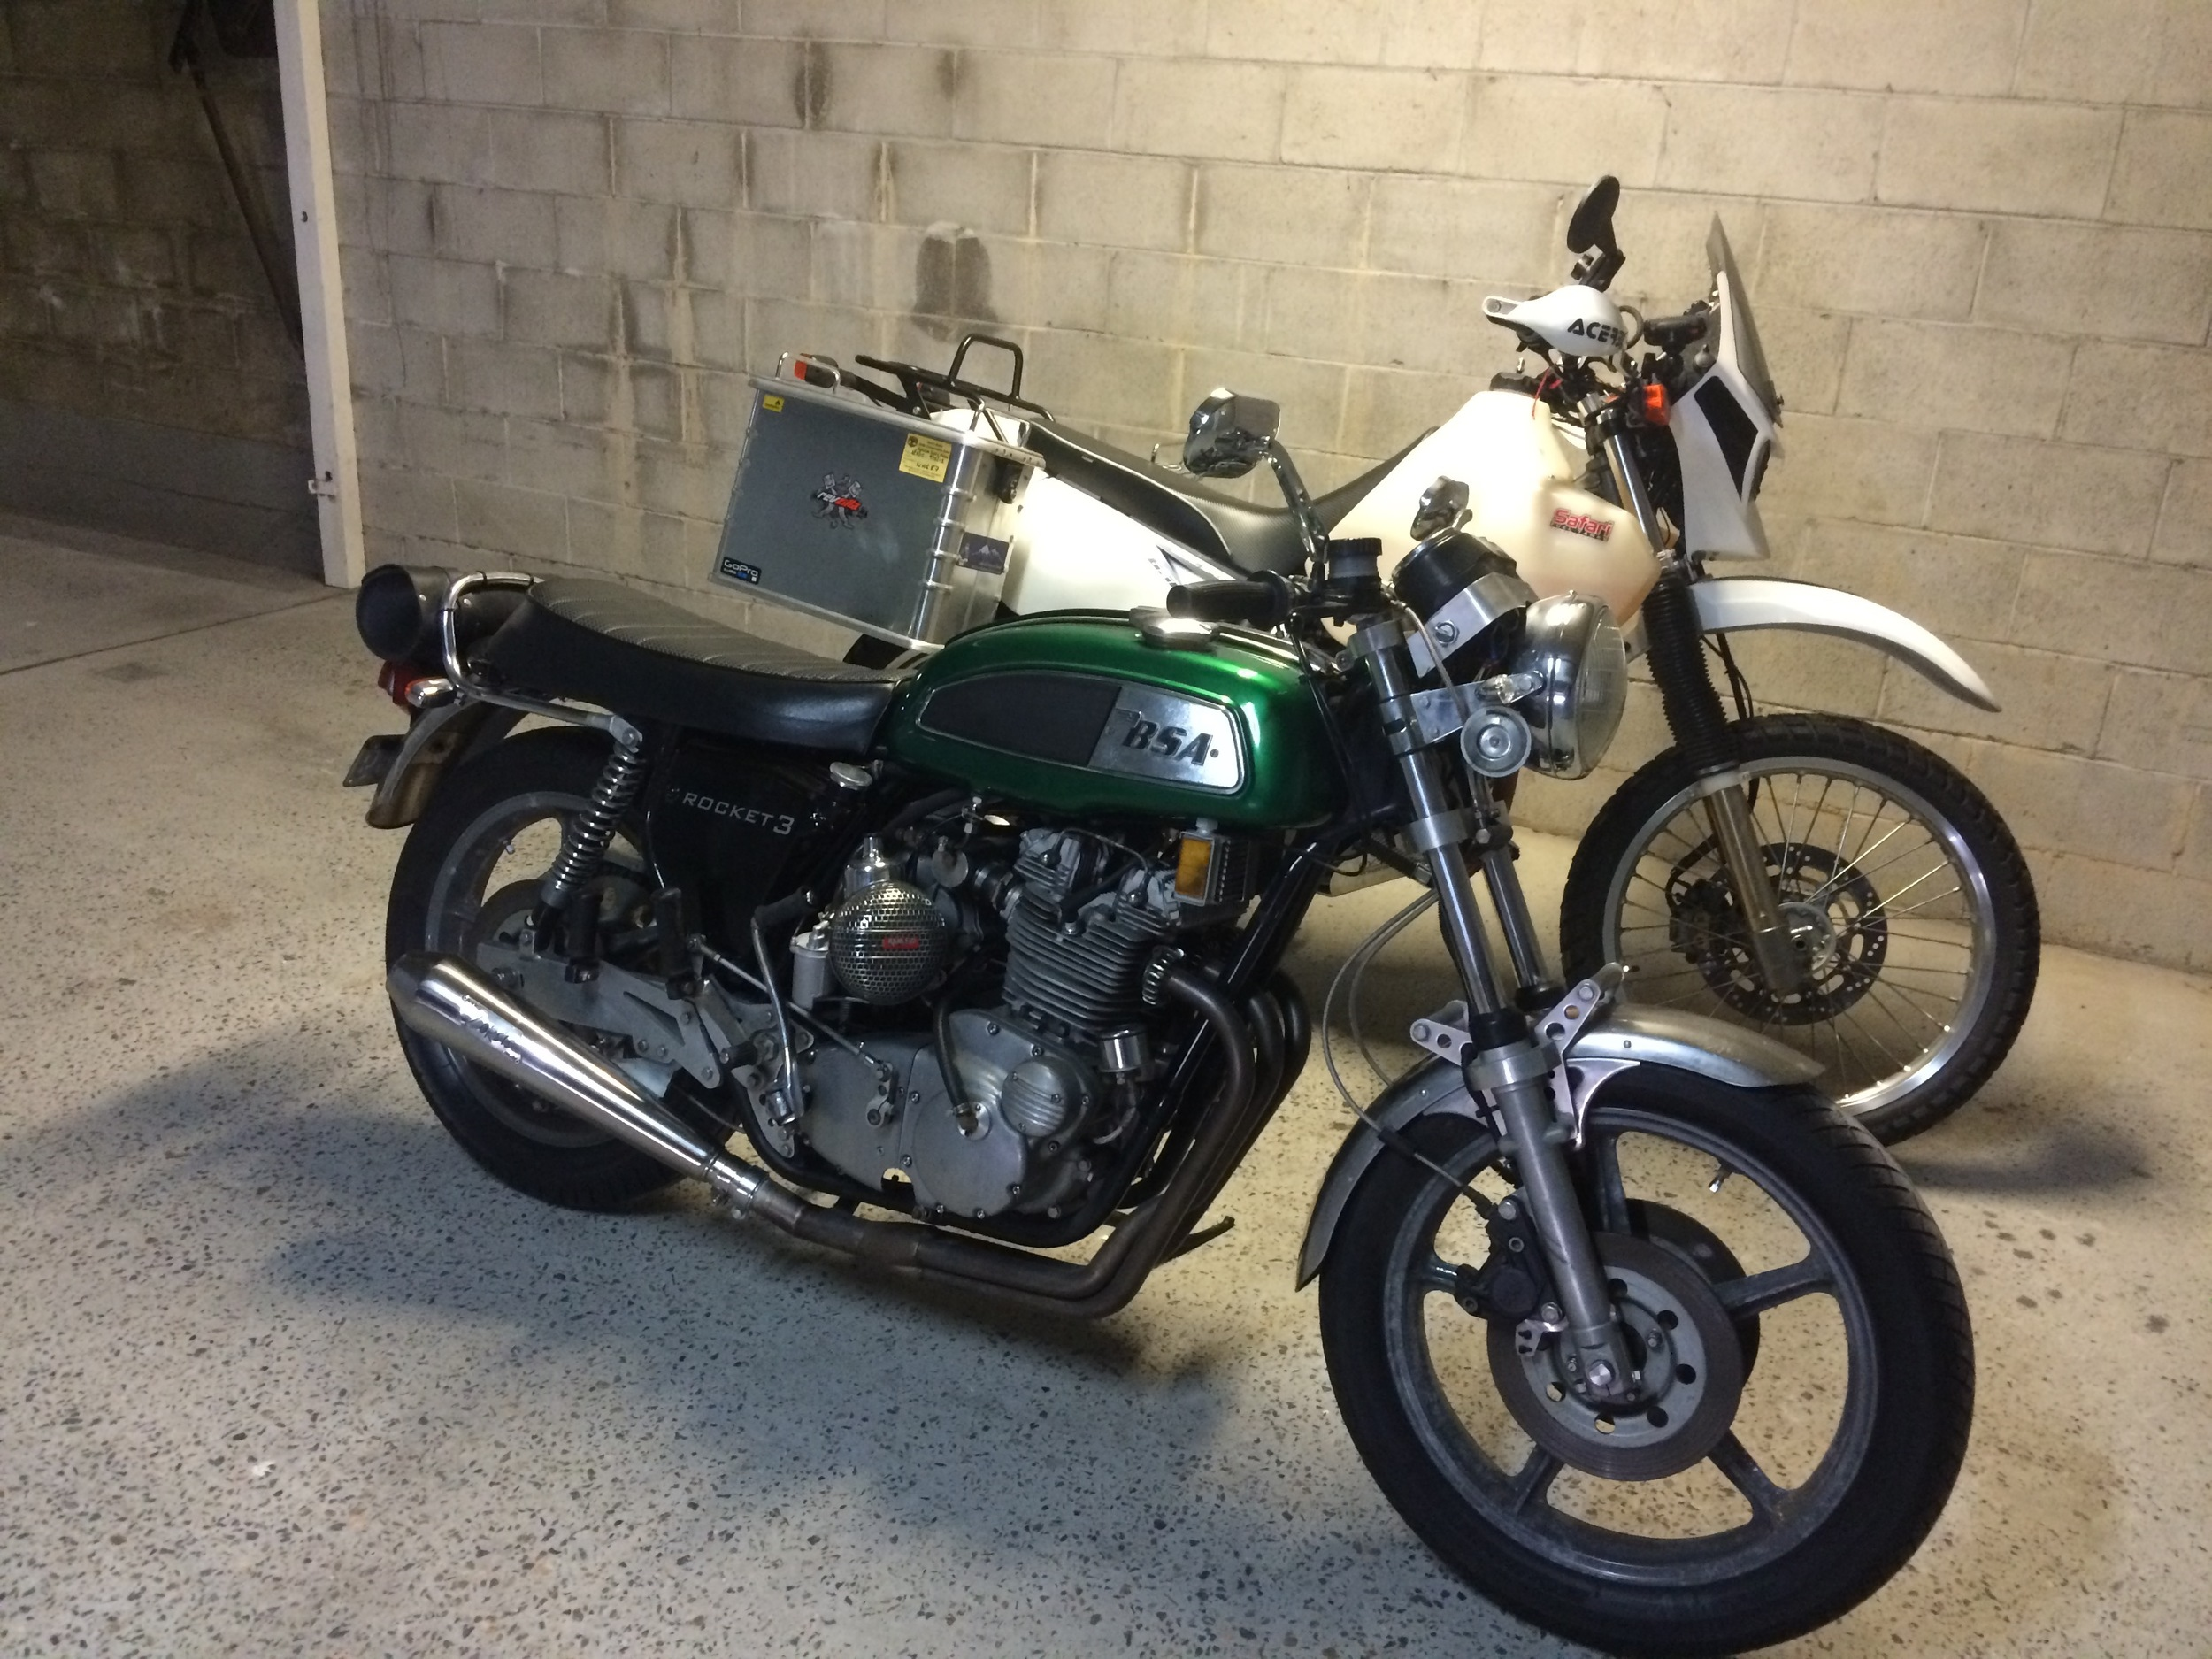 Jeff's DR beside his '69 BSA A75R....the supercharged beastie